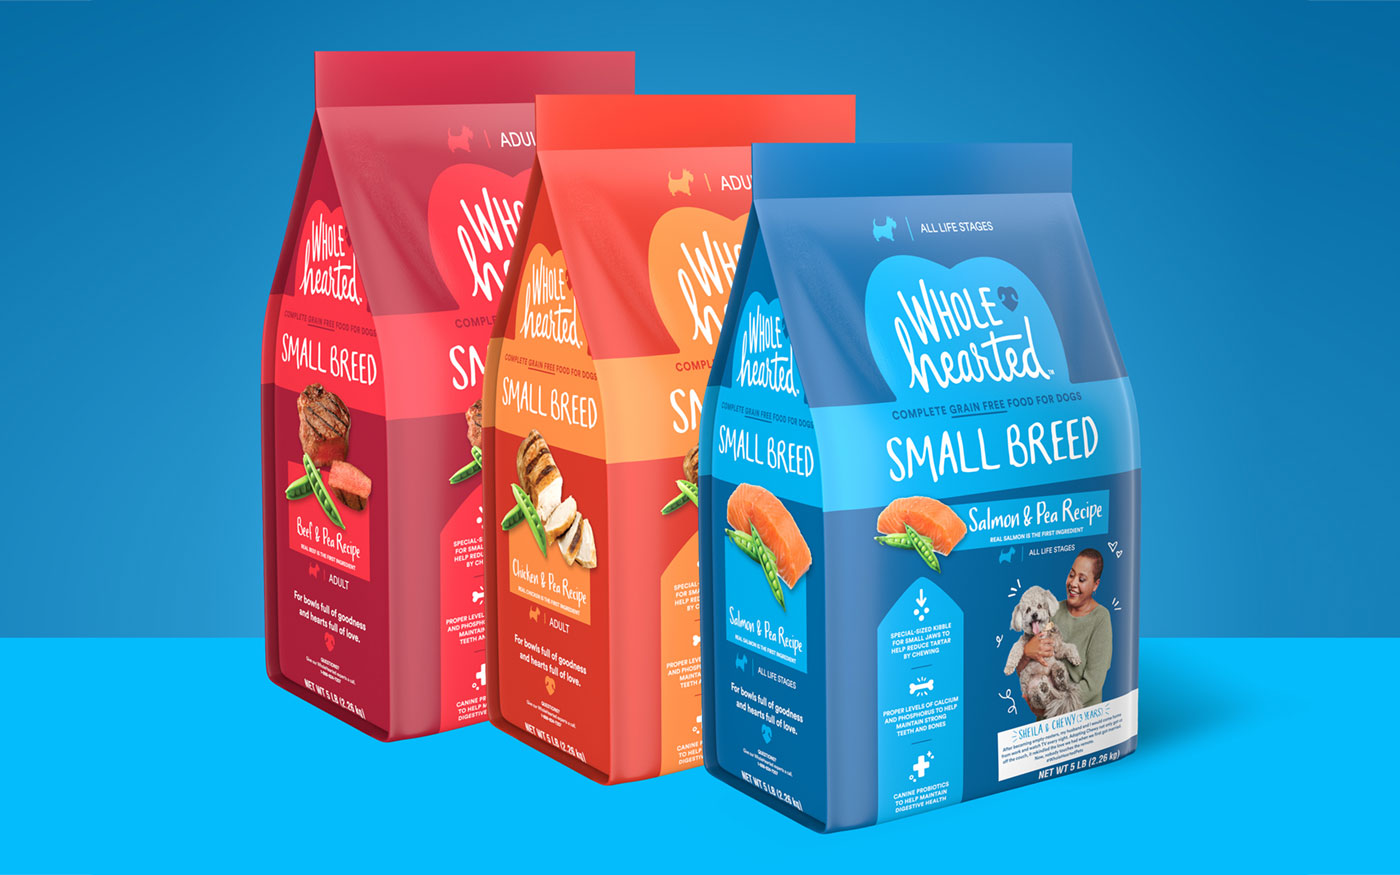 WholeHearted Small Breed Pet Food Line